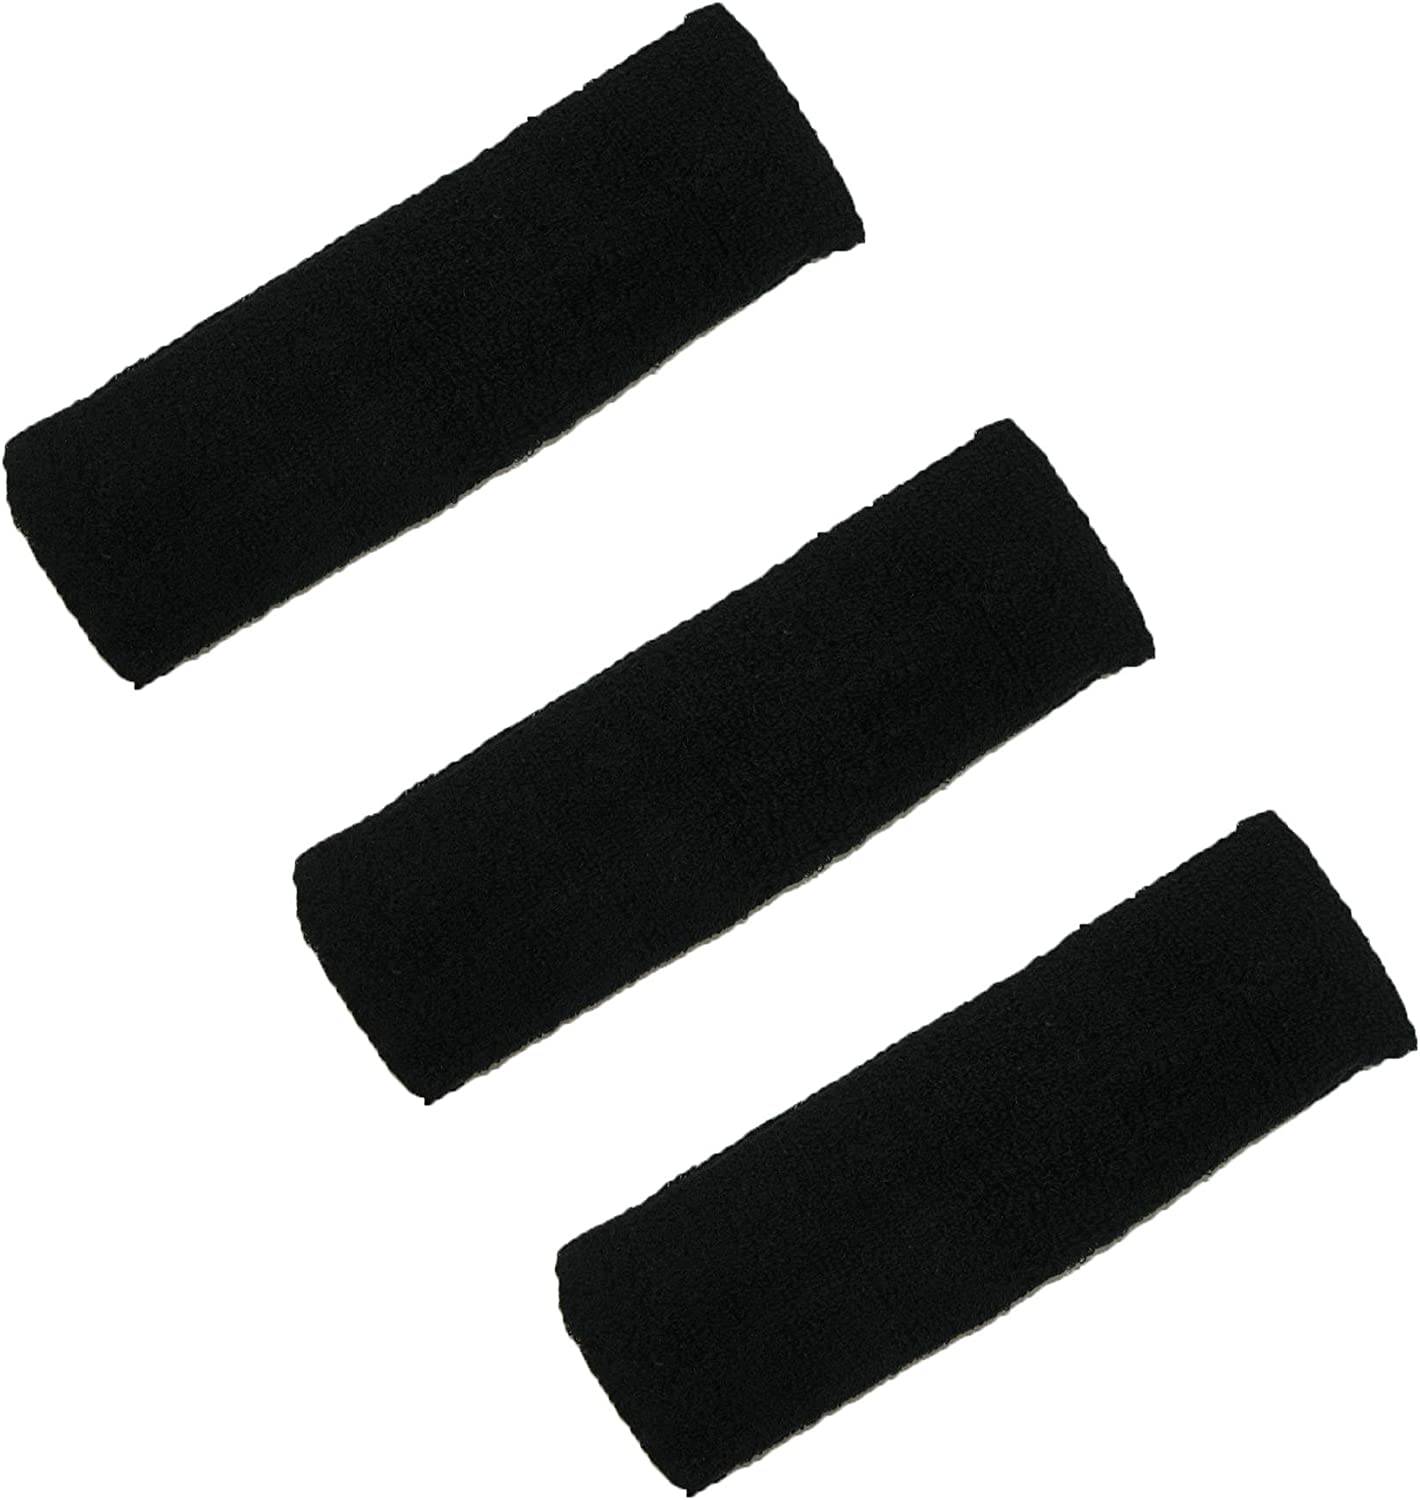 CTM Cotton Terry Cloth Sweat Sport Headband (Pack of 3)